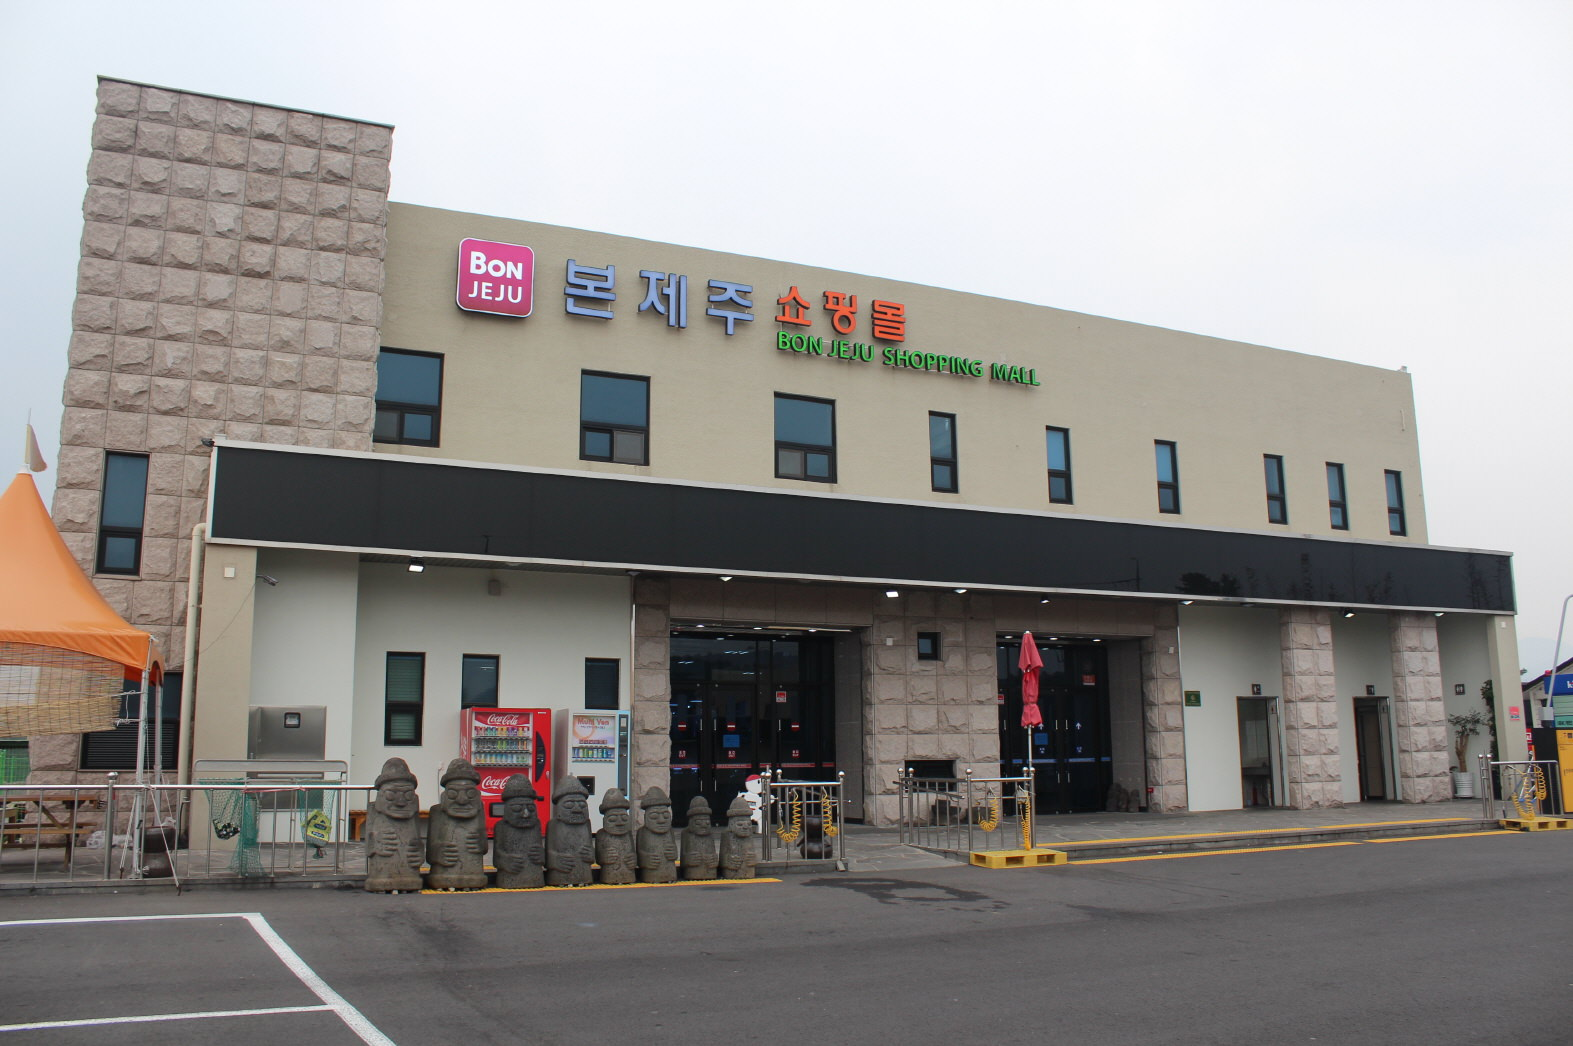 Bon Jeju Shopping Mall